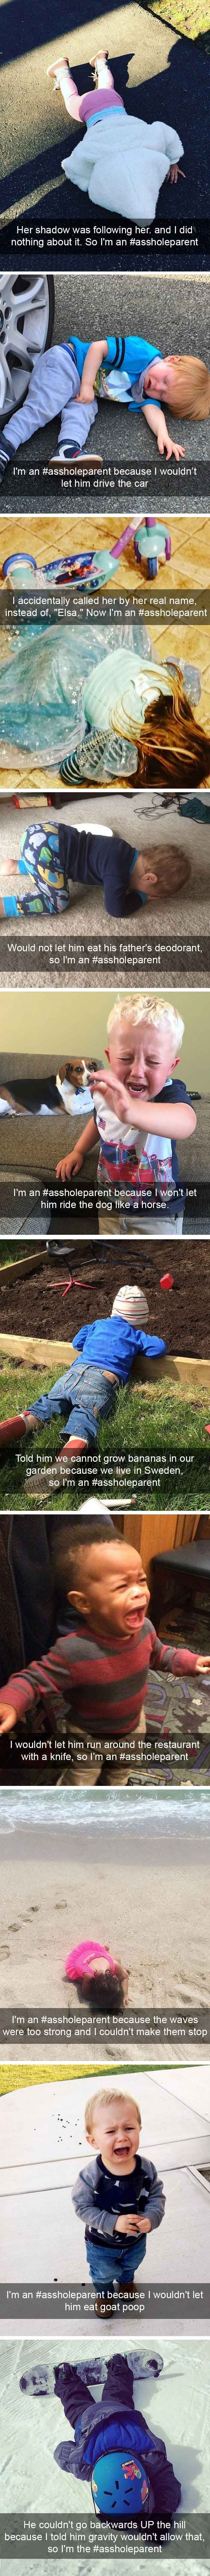 Asshole Parents Who Ruined Their Children's Lives